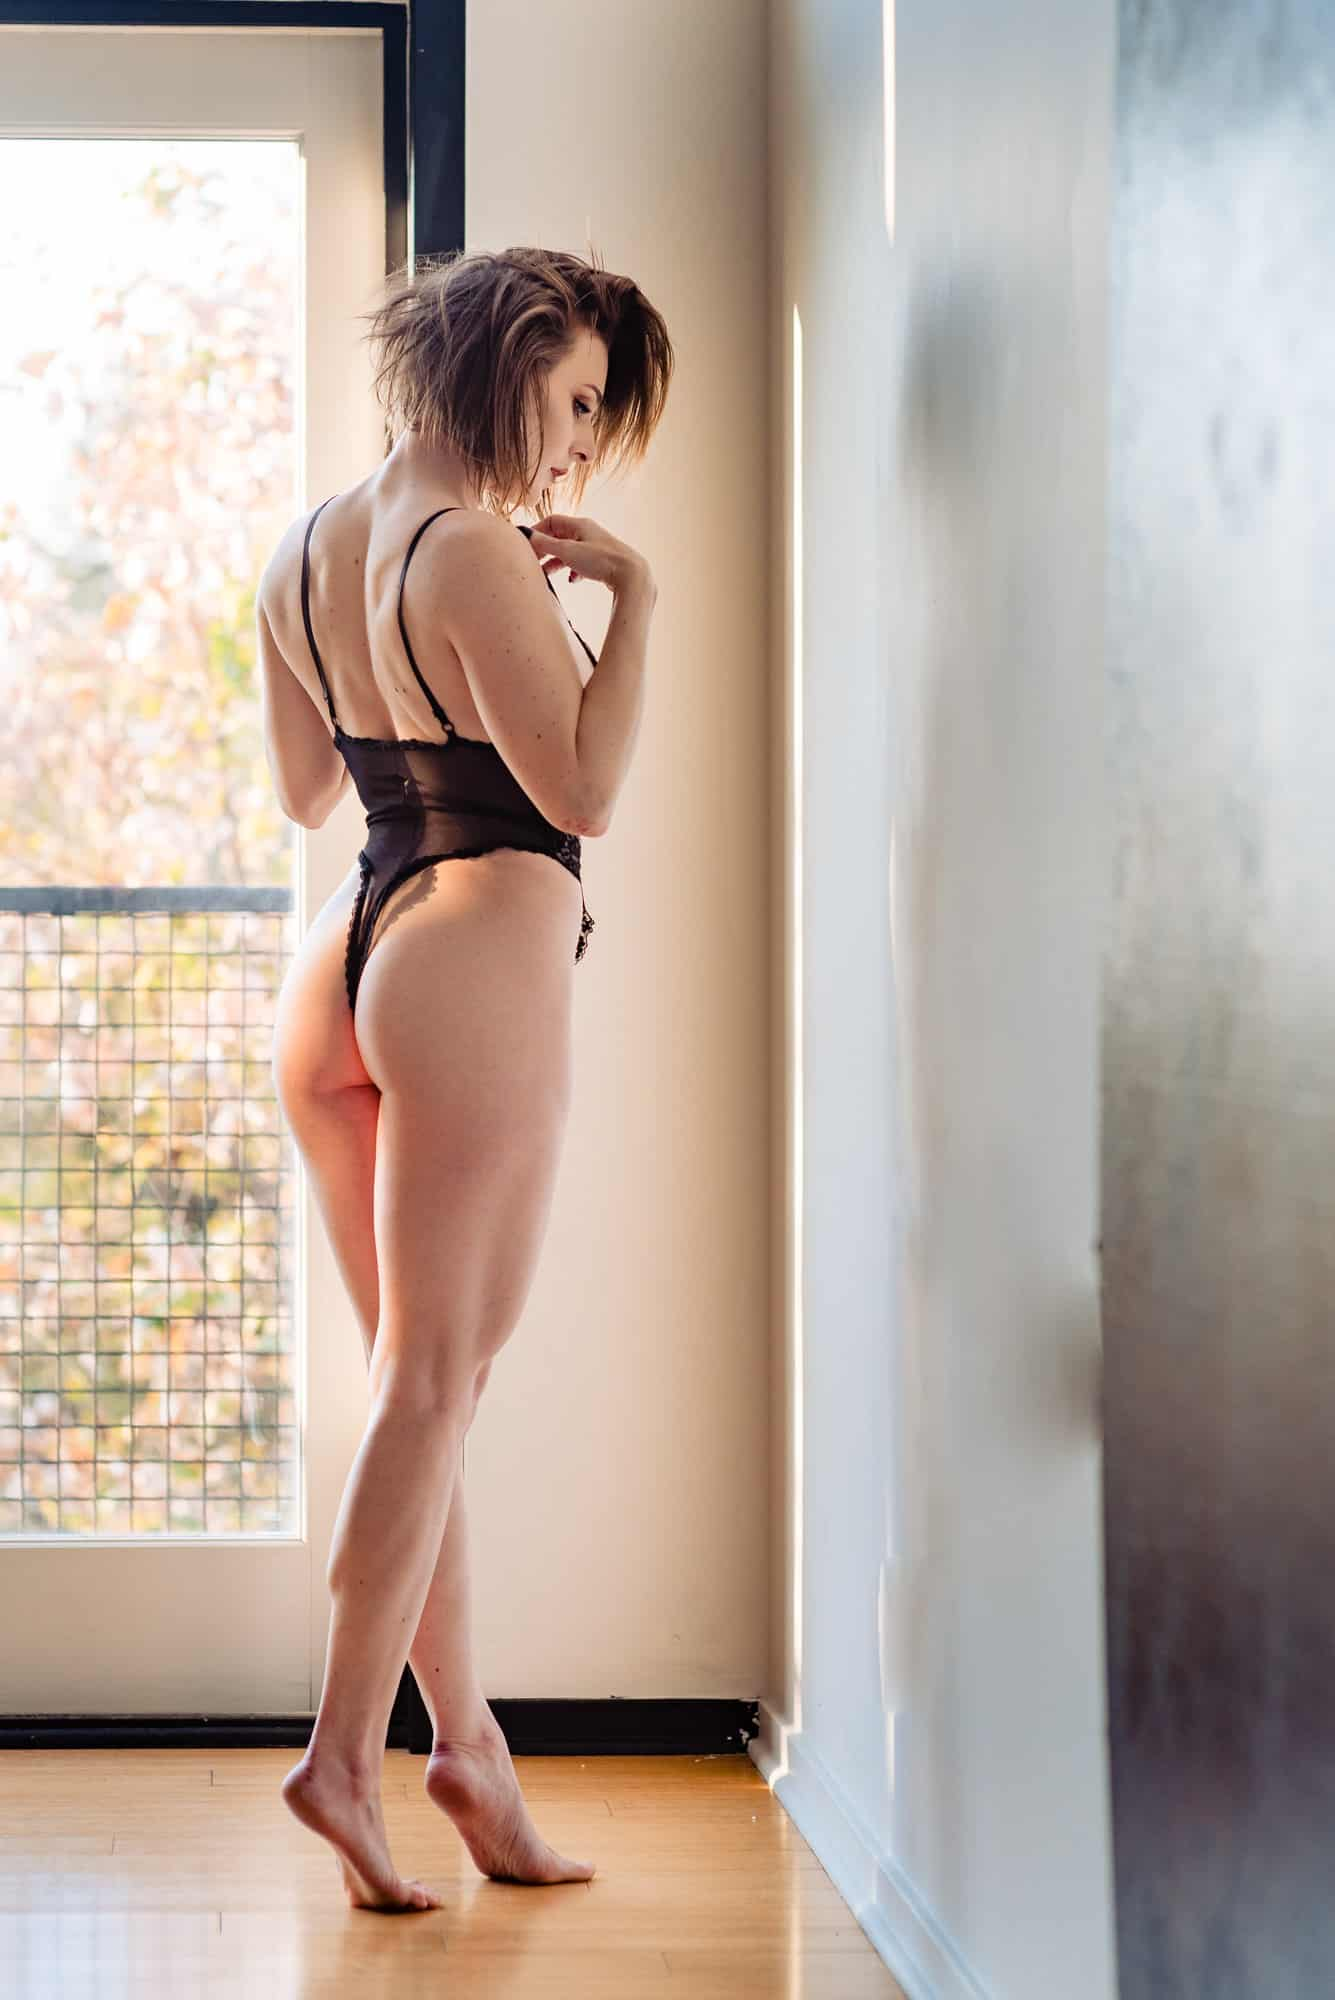 boudoir photo of woman in black lingerie